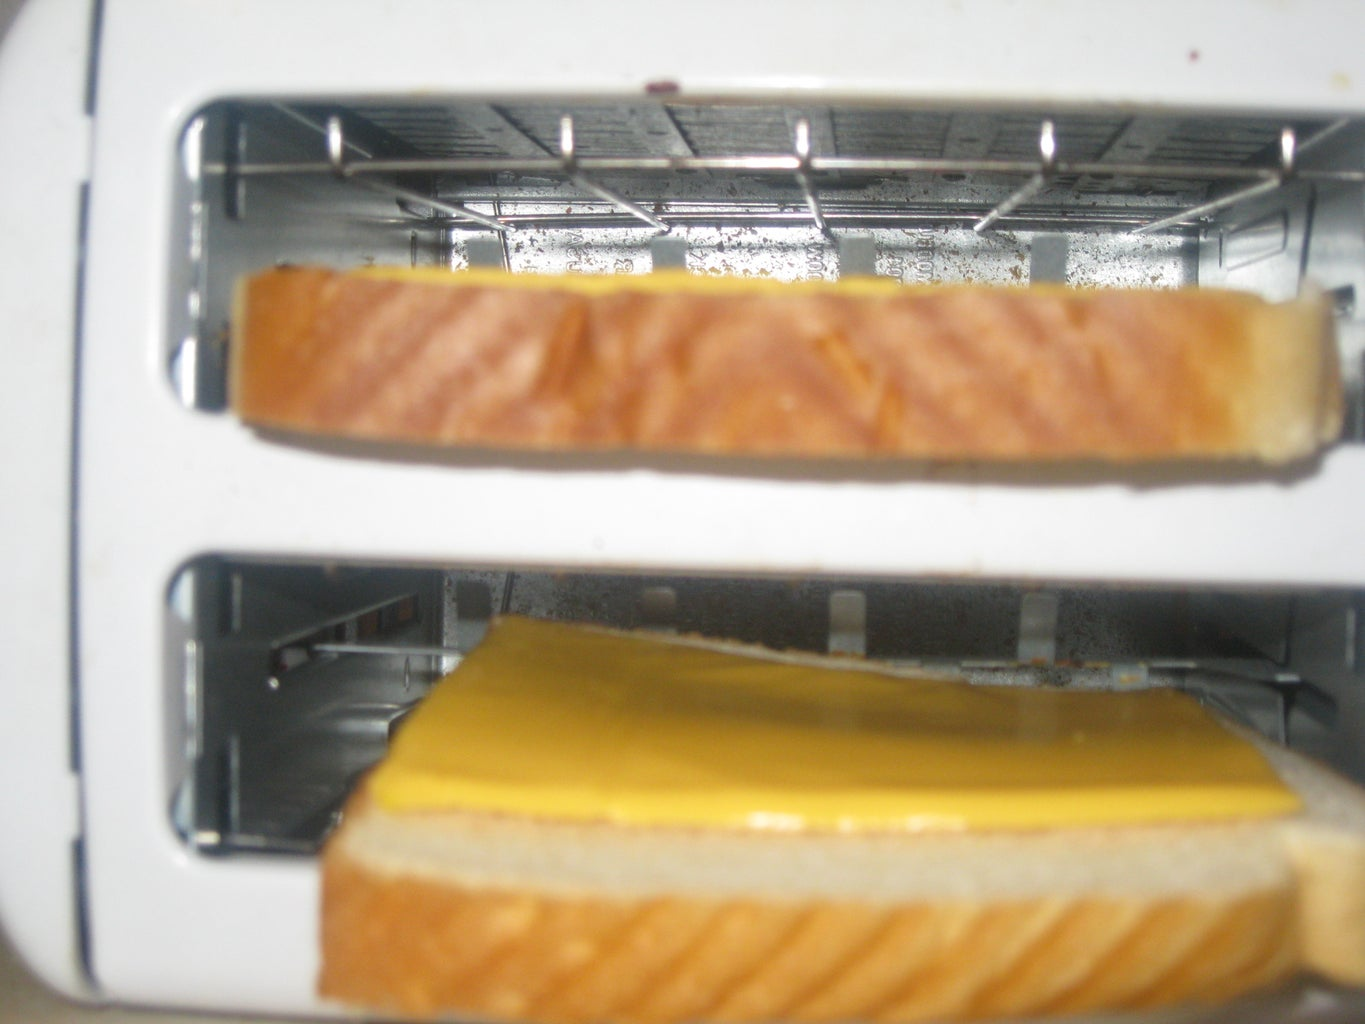 How to Make a Grill Cheese in a Toaster